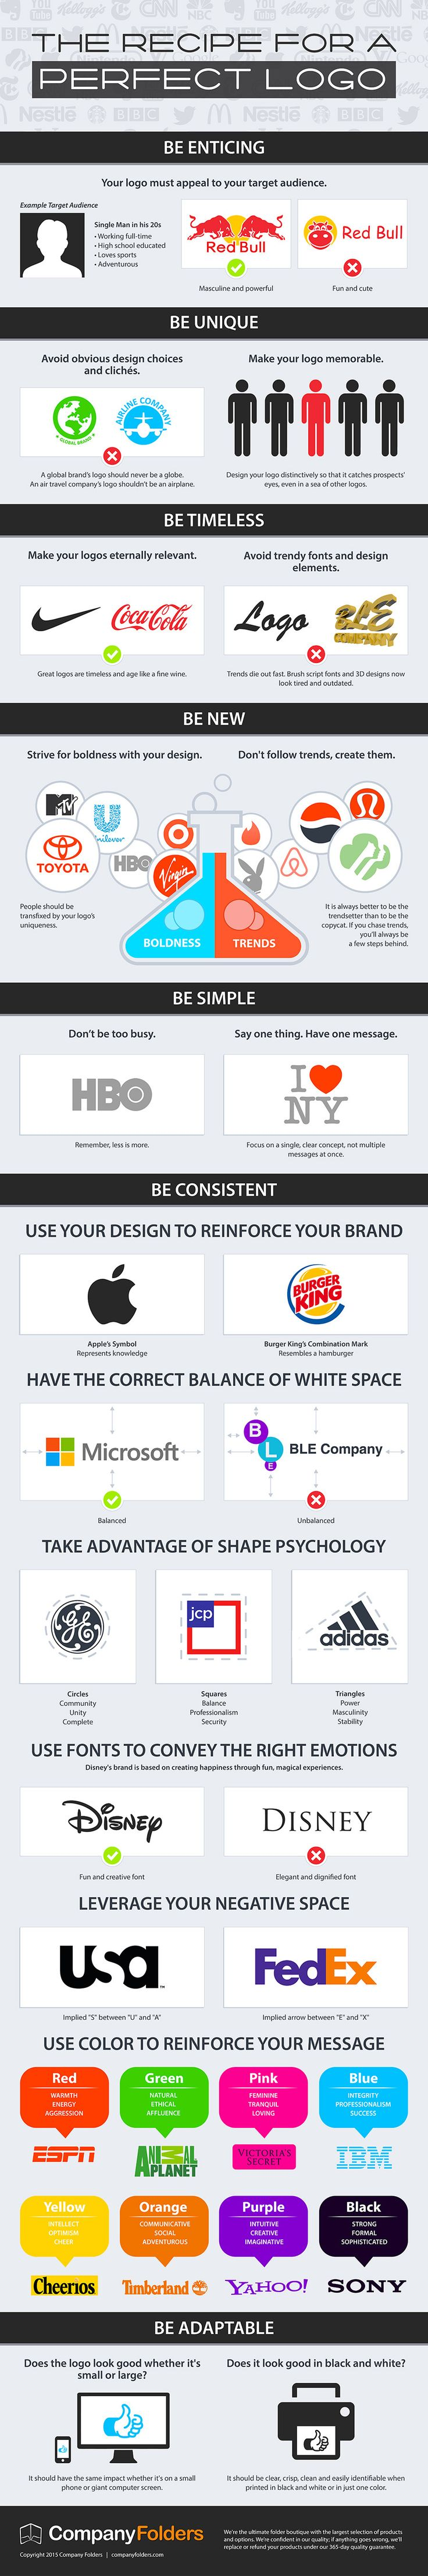 How to Design the Perfect Business Logo (Infographic)